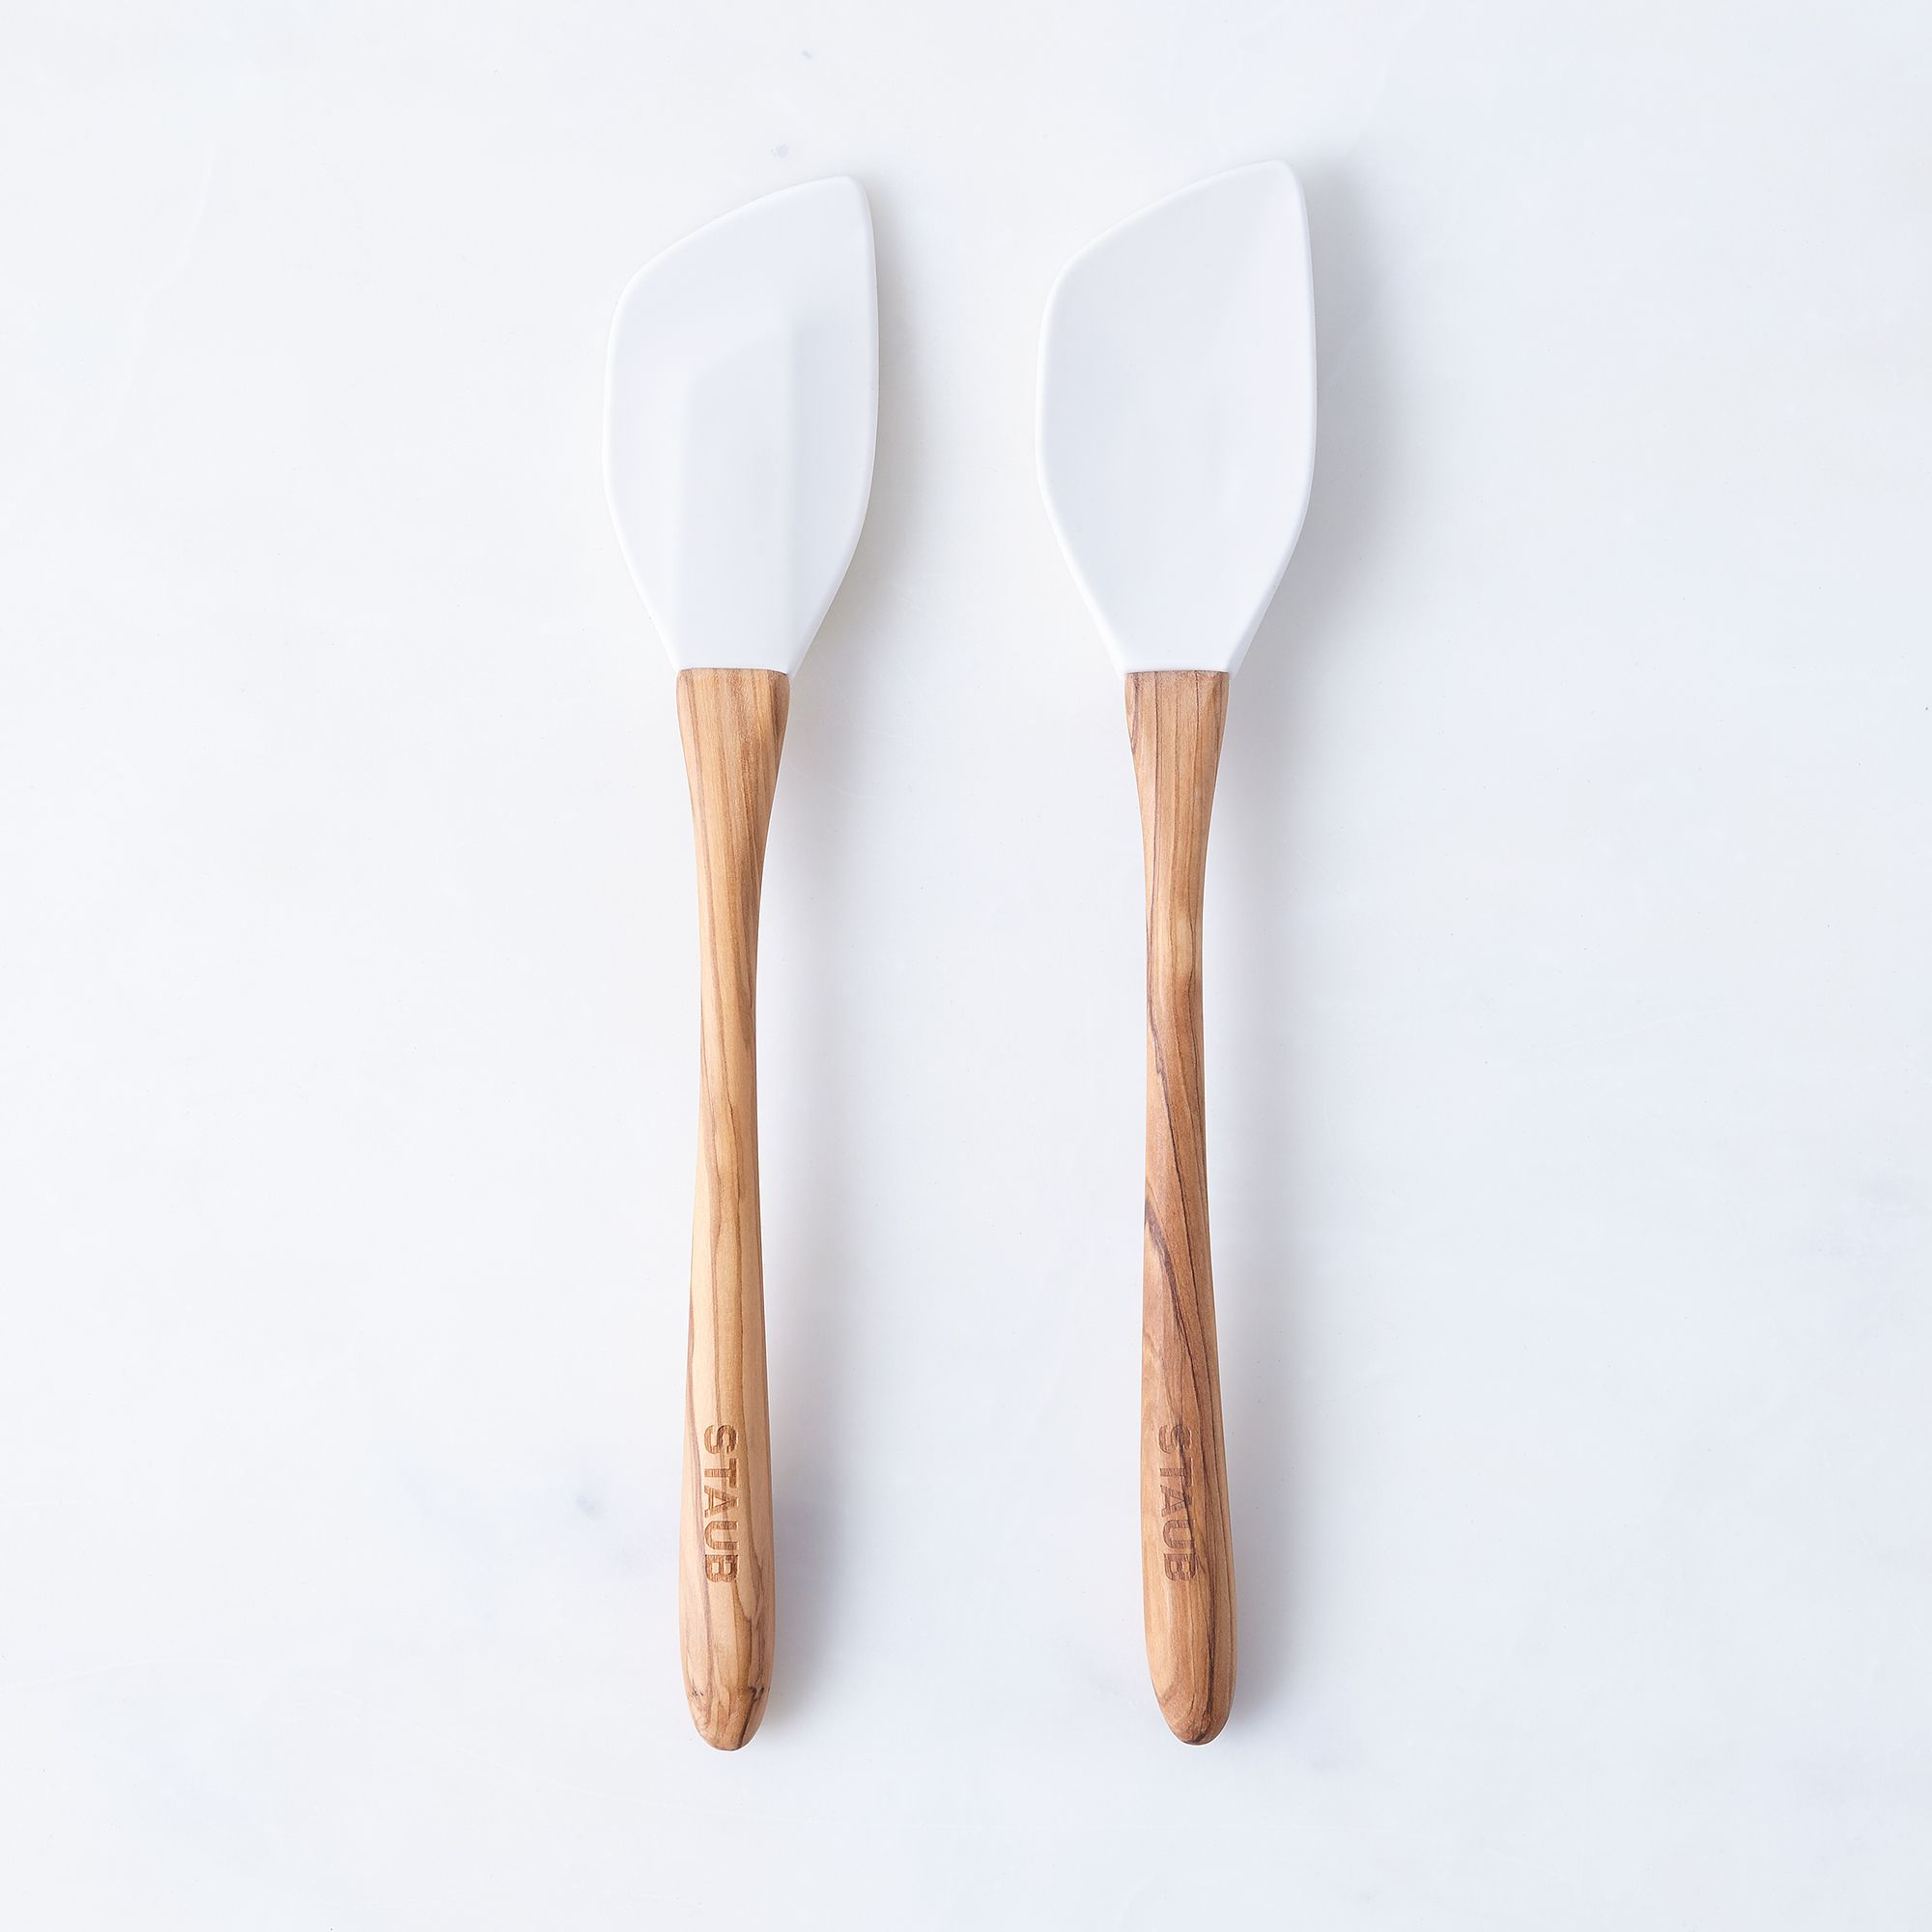 E932be1c c6c7 43af 9311 c7c075317070  2016 0909 zwilling staub olive wood silicone spoon and spatula set white silo rocky luten 102